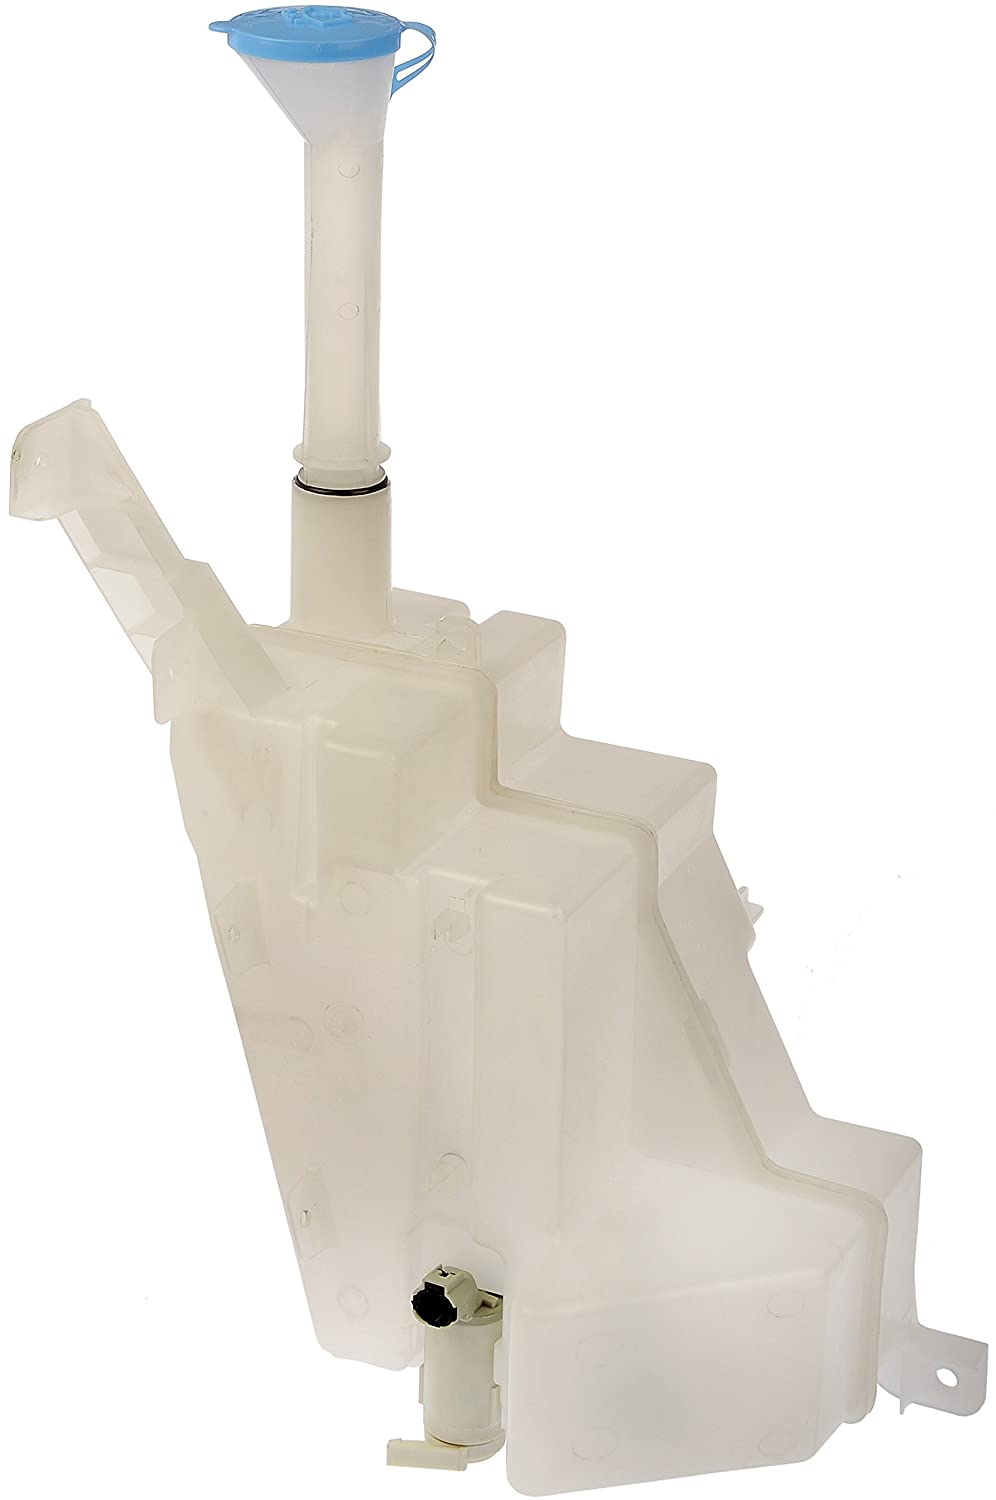 719HxOlaxWL._SL1500_ amazon com dorman 603 616 windshield washer fluid reservoir Nissan Altima Speed Sensor at gsmx.co